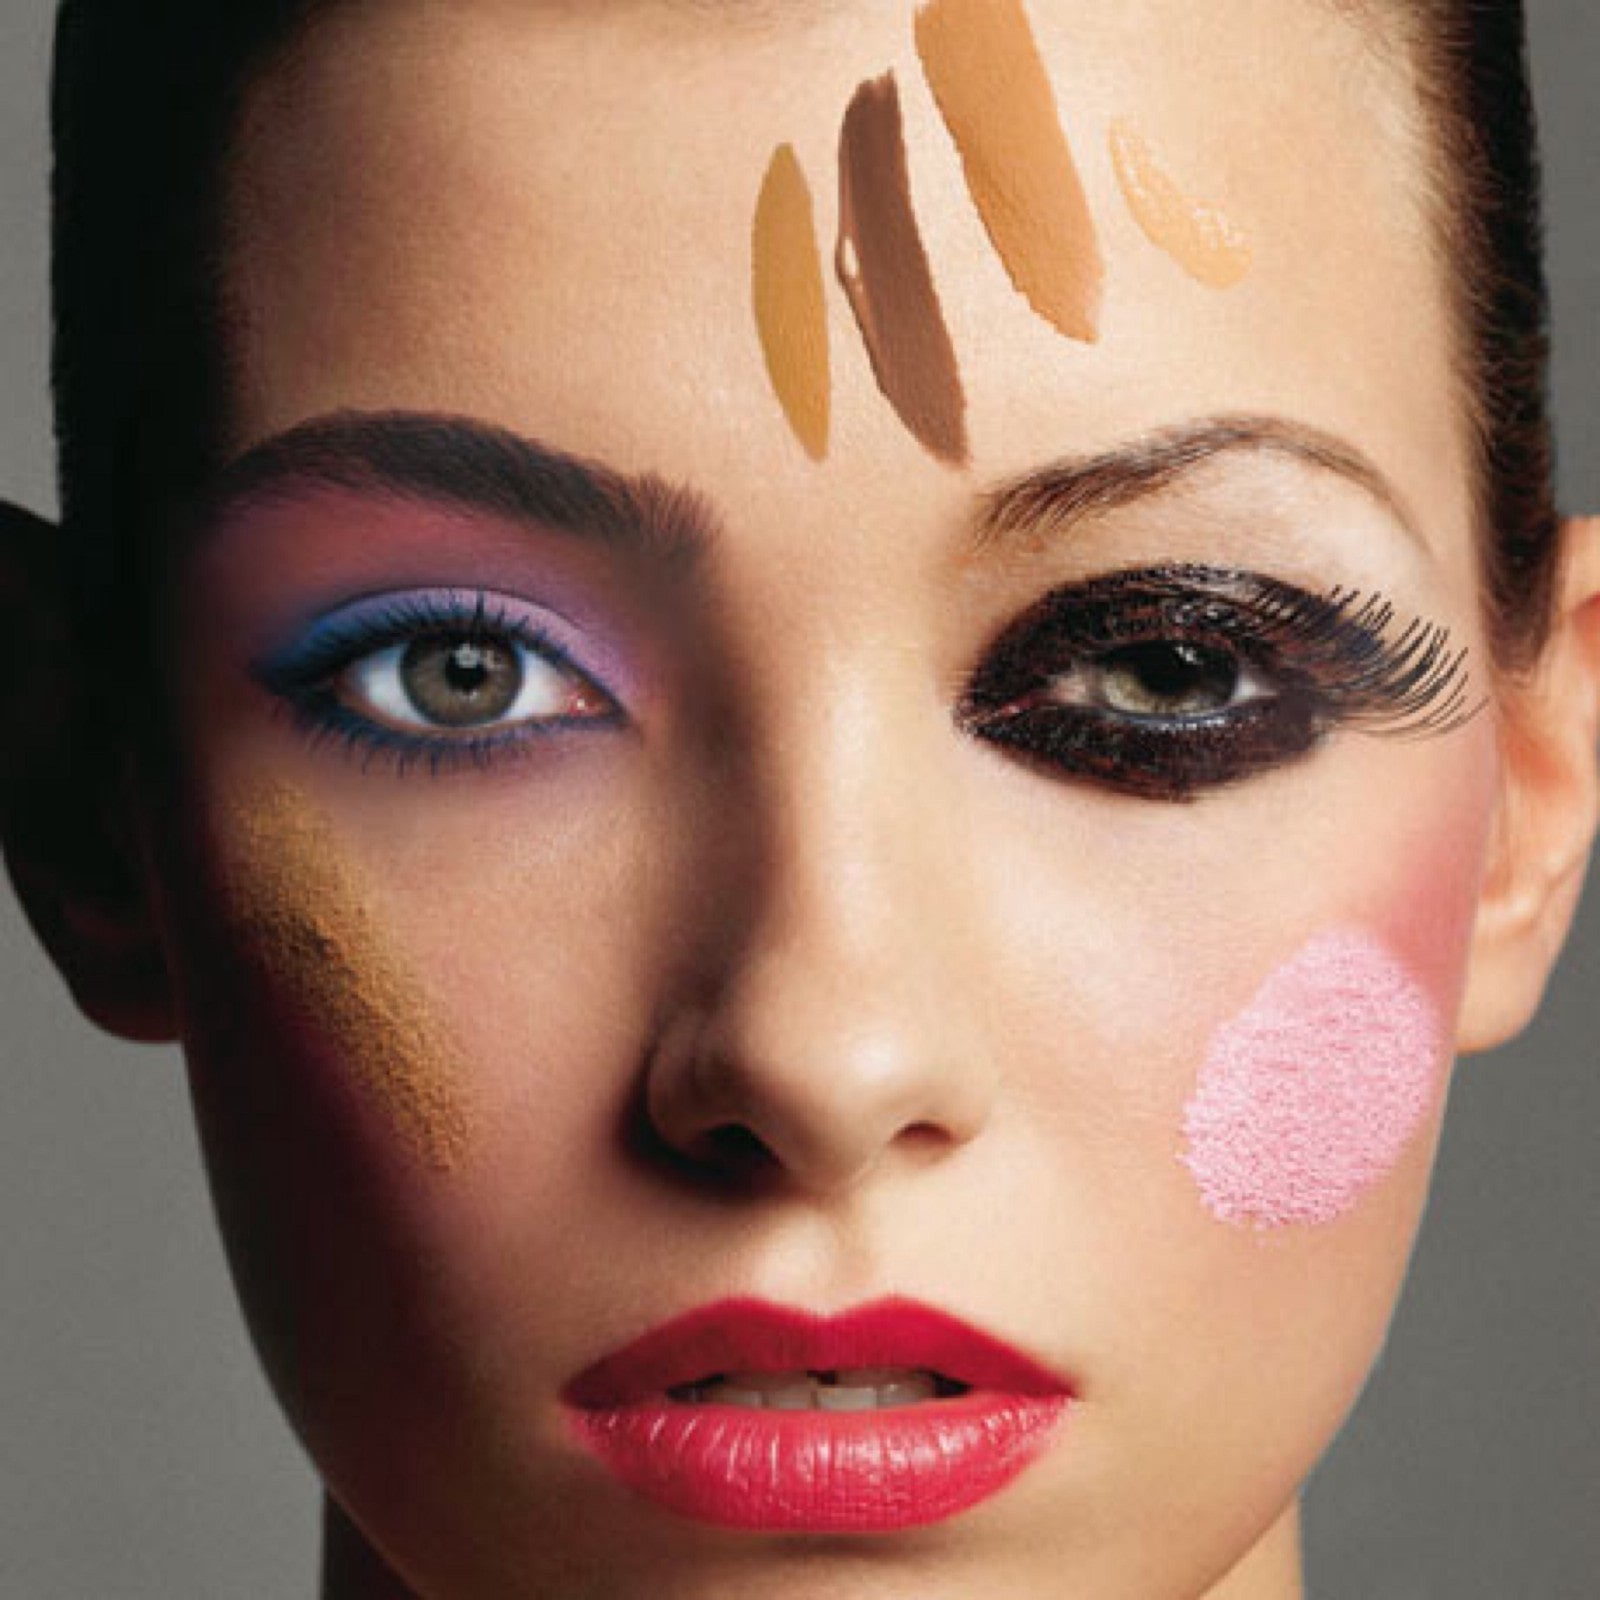 too many makeup types on one woman's face, including red lips, smoky eyeshadow, pastel eye, blusher, bronze, multiple foundation shades.